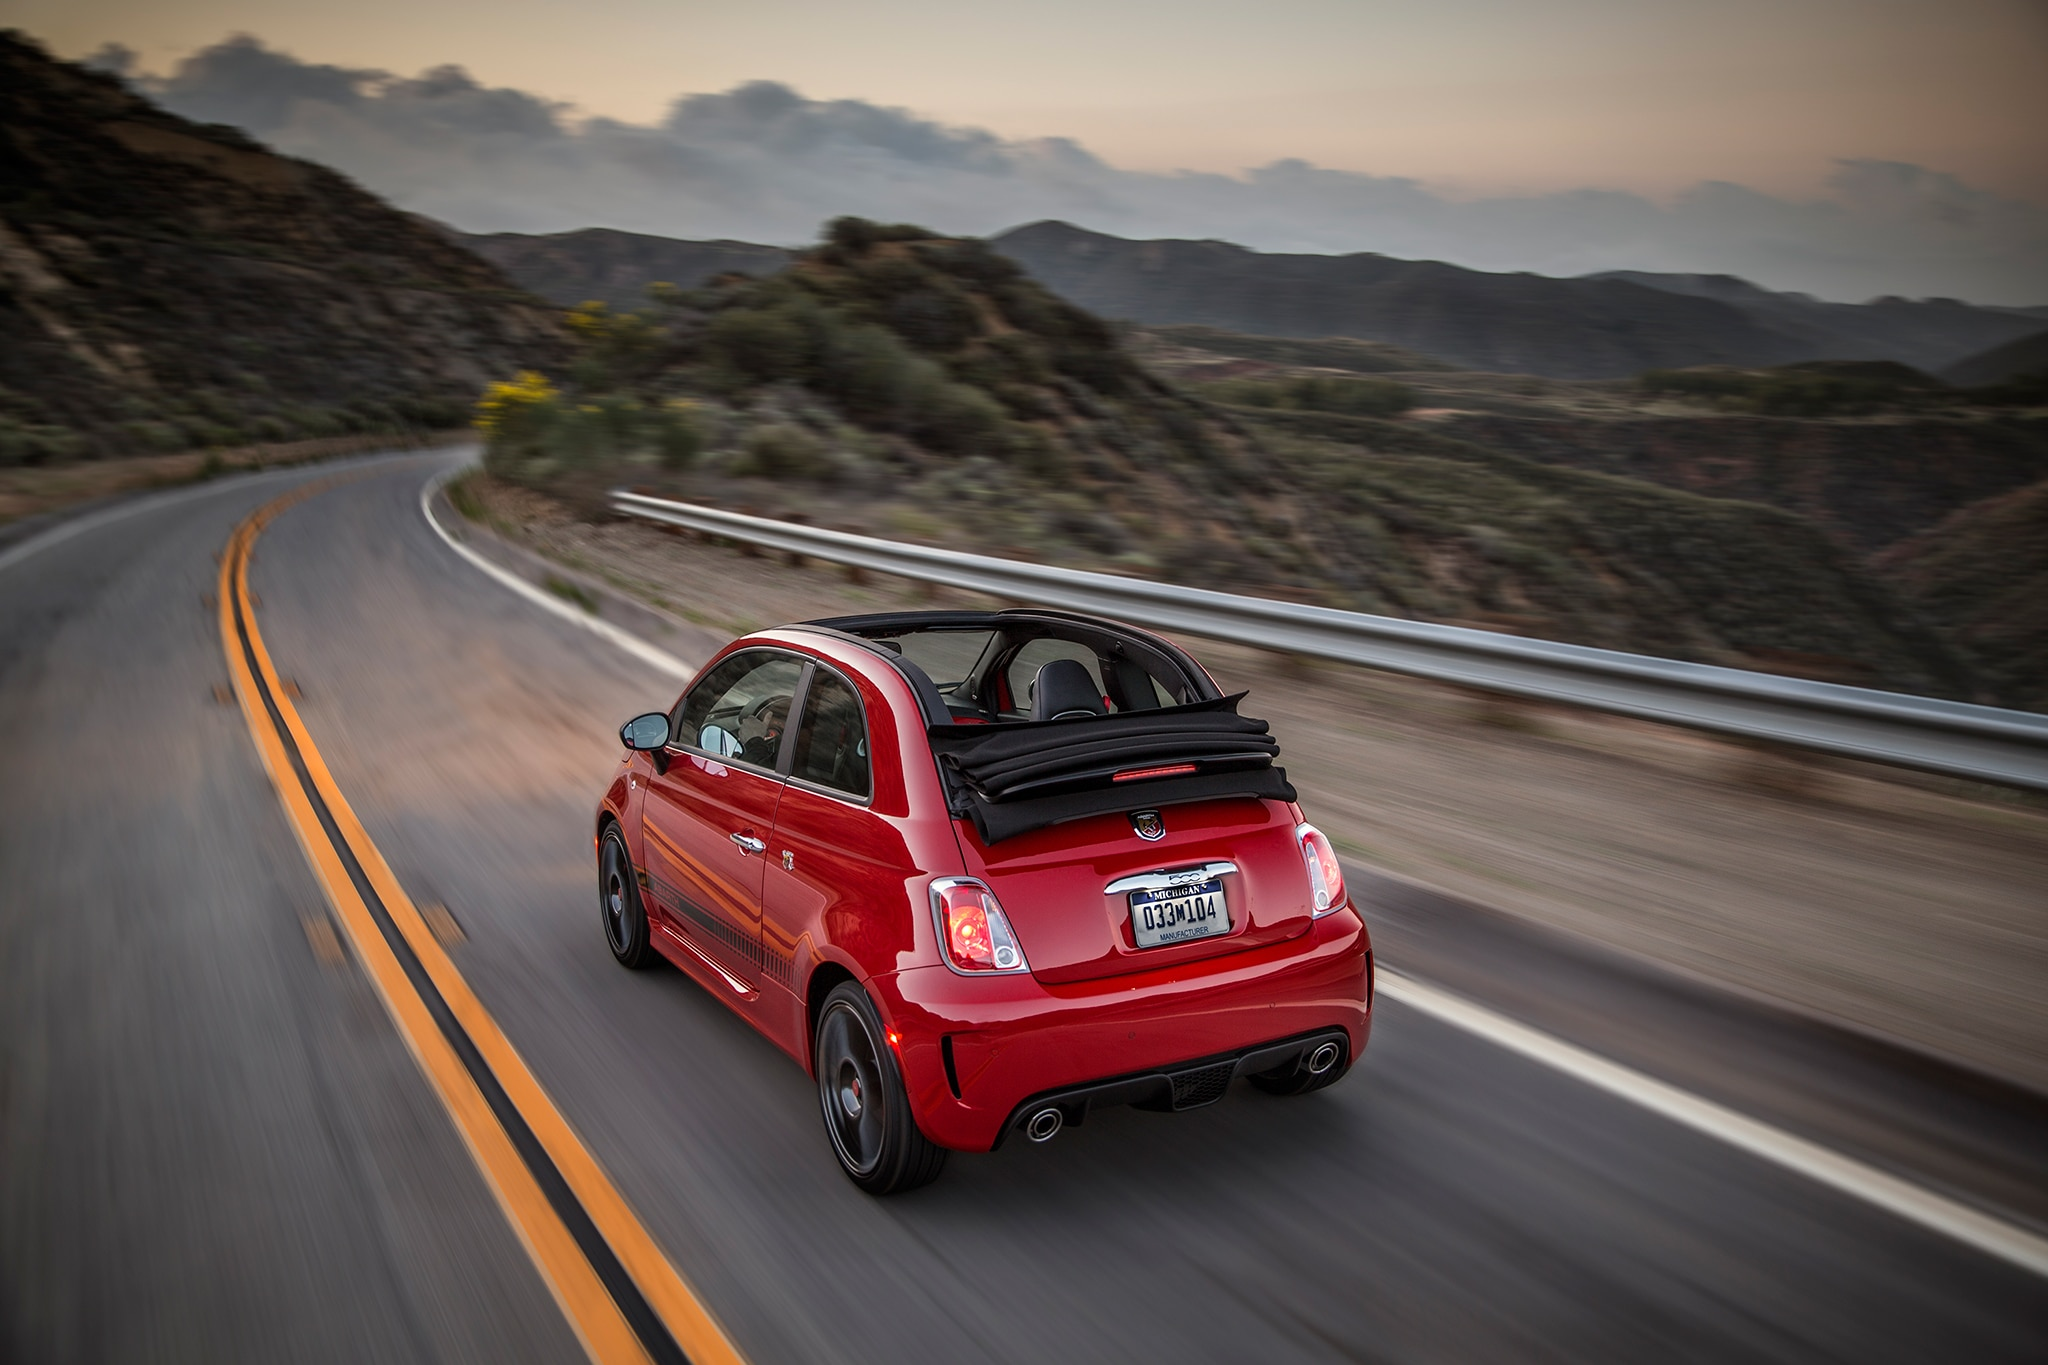 2019 Fiat 500 Abarth Cabriolet Review Fun But A Hard Sell Automobile Magazine